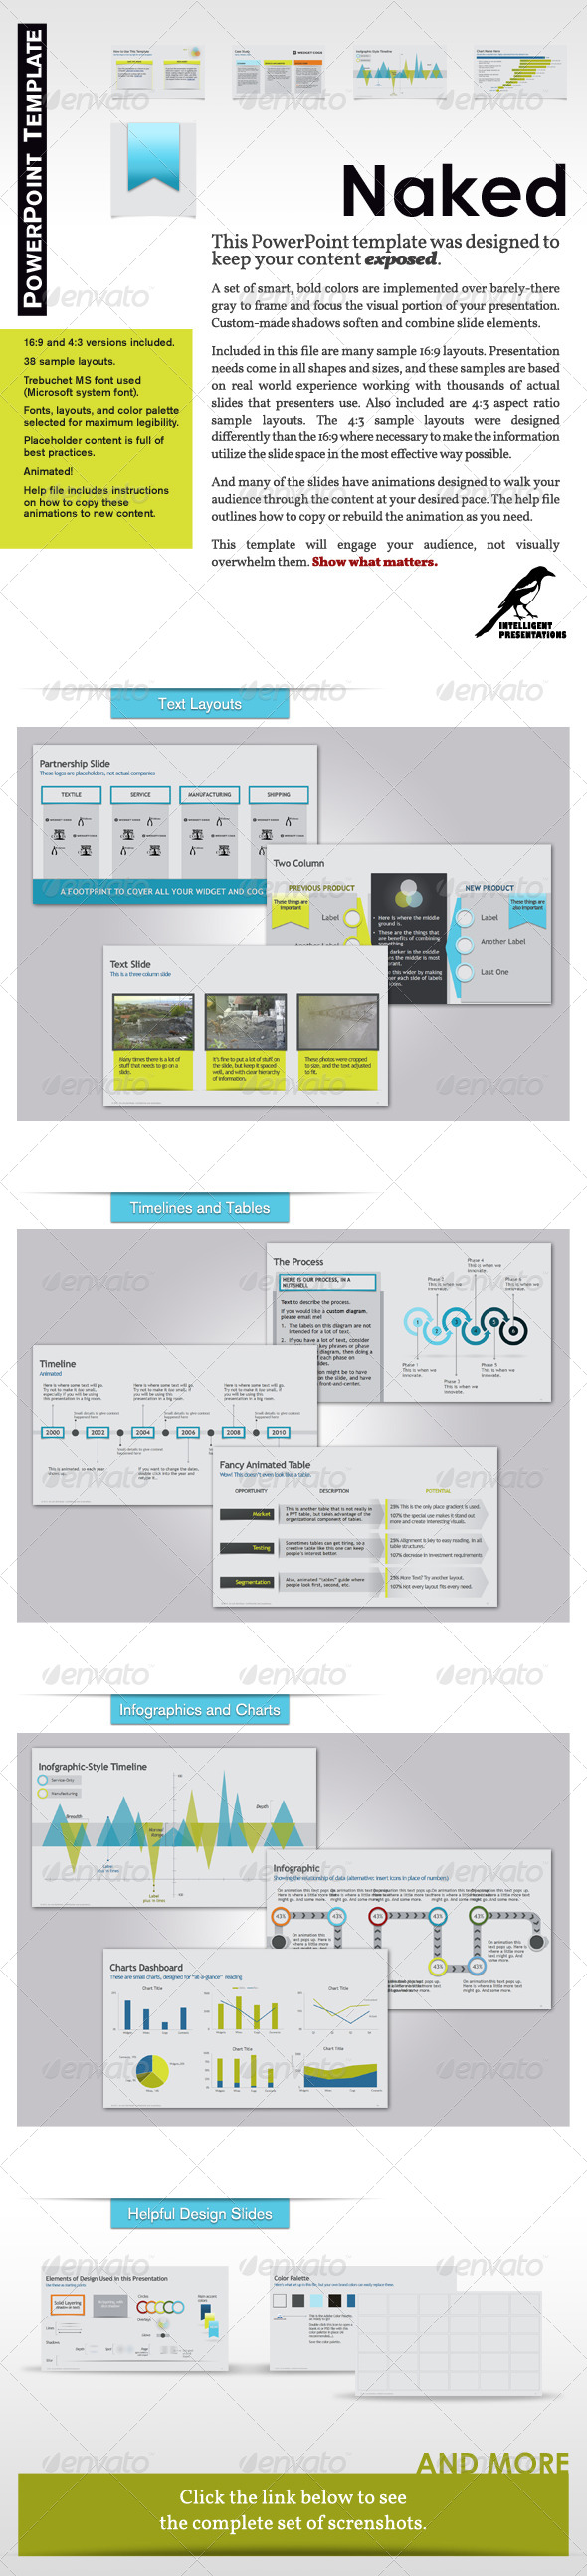 powerpoint handout template - creative handouts templates stock